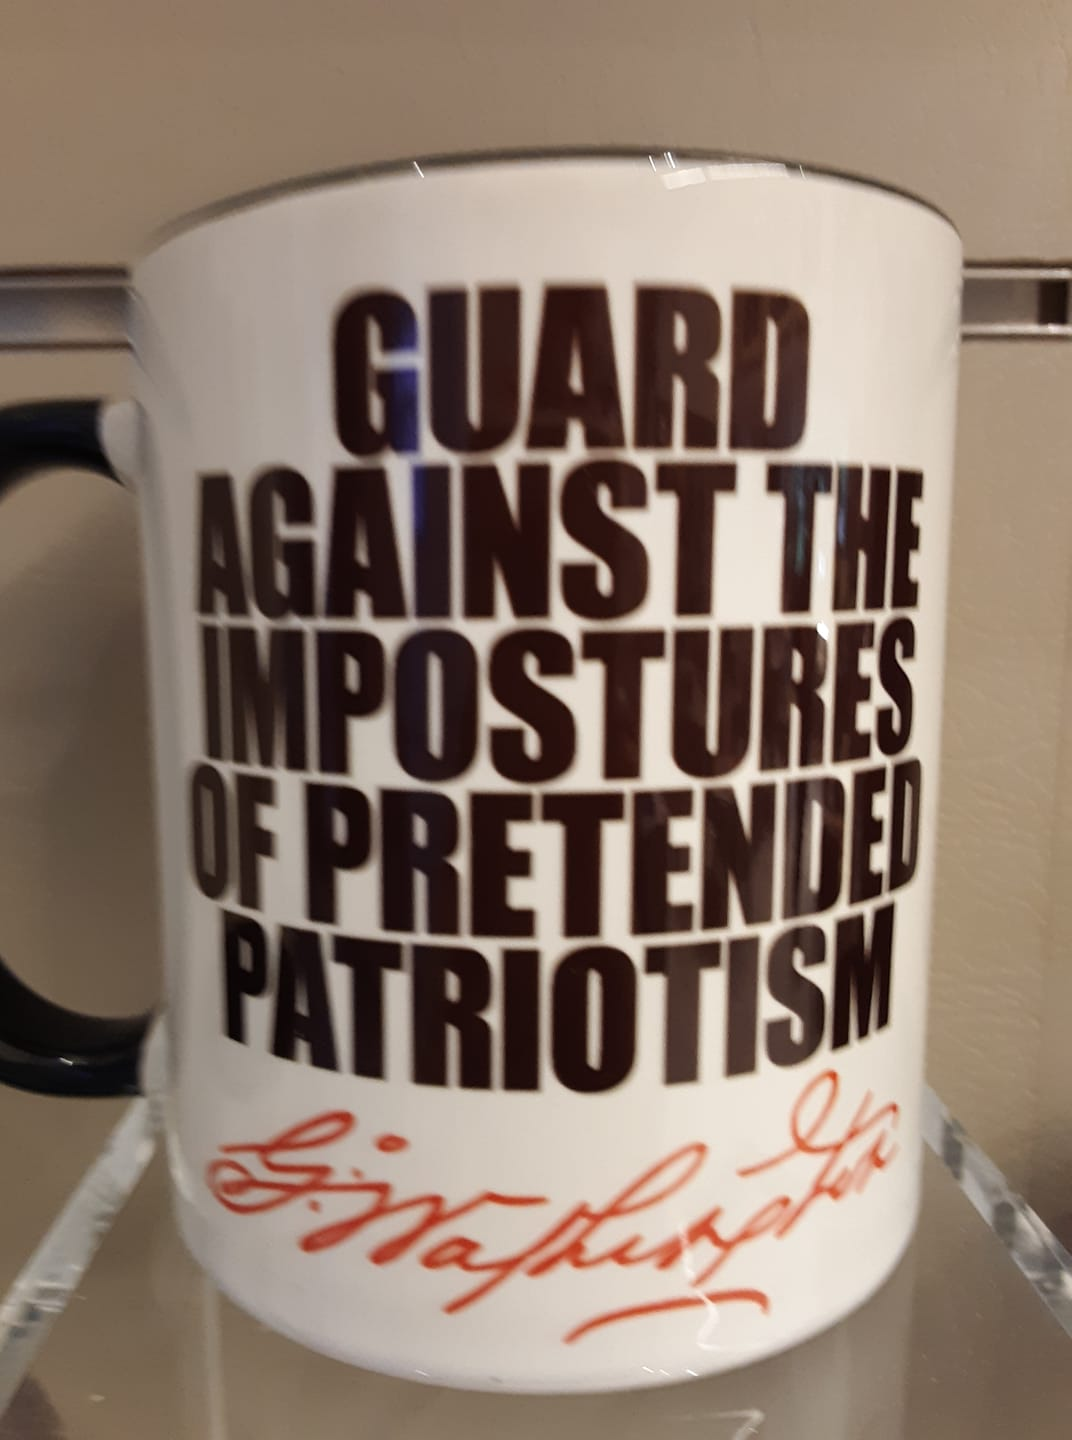 I found this mug at the NY HISTORICAL SOCIETY emblazoned with a saying by George Washington